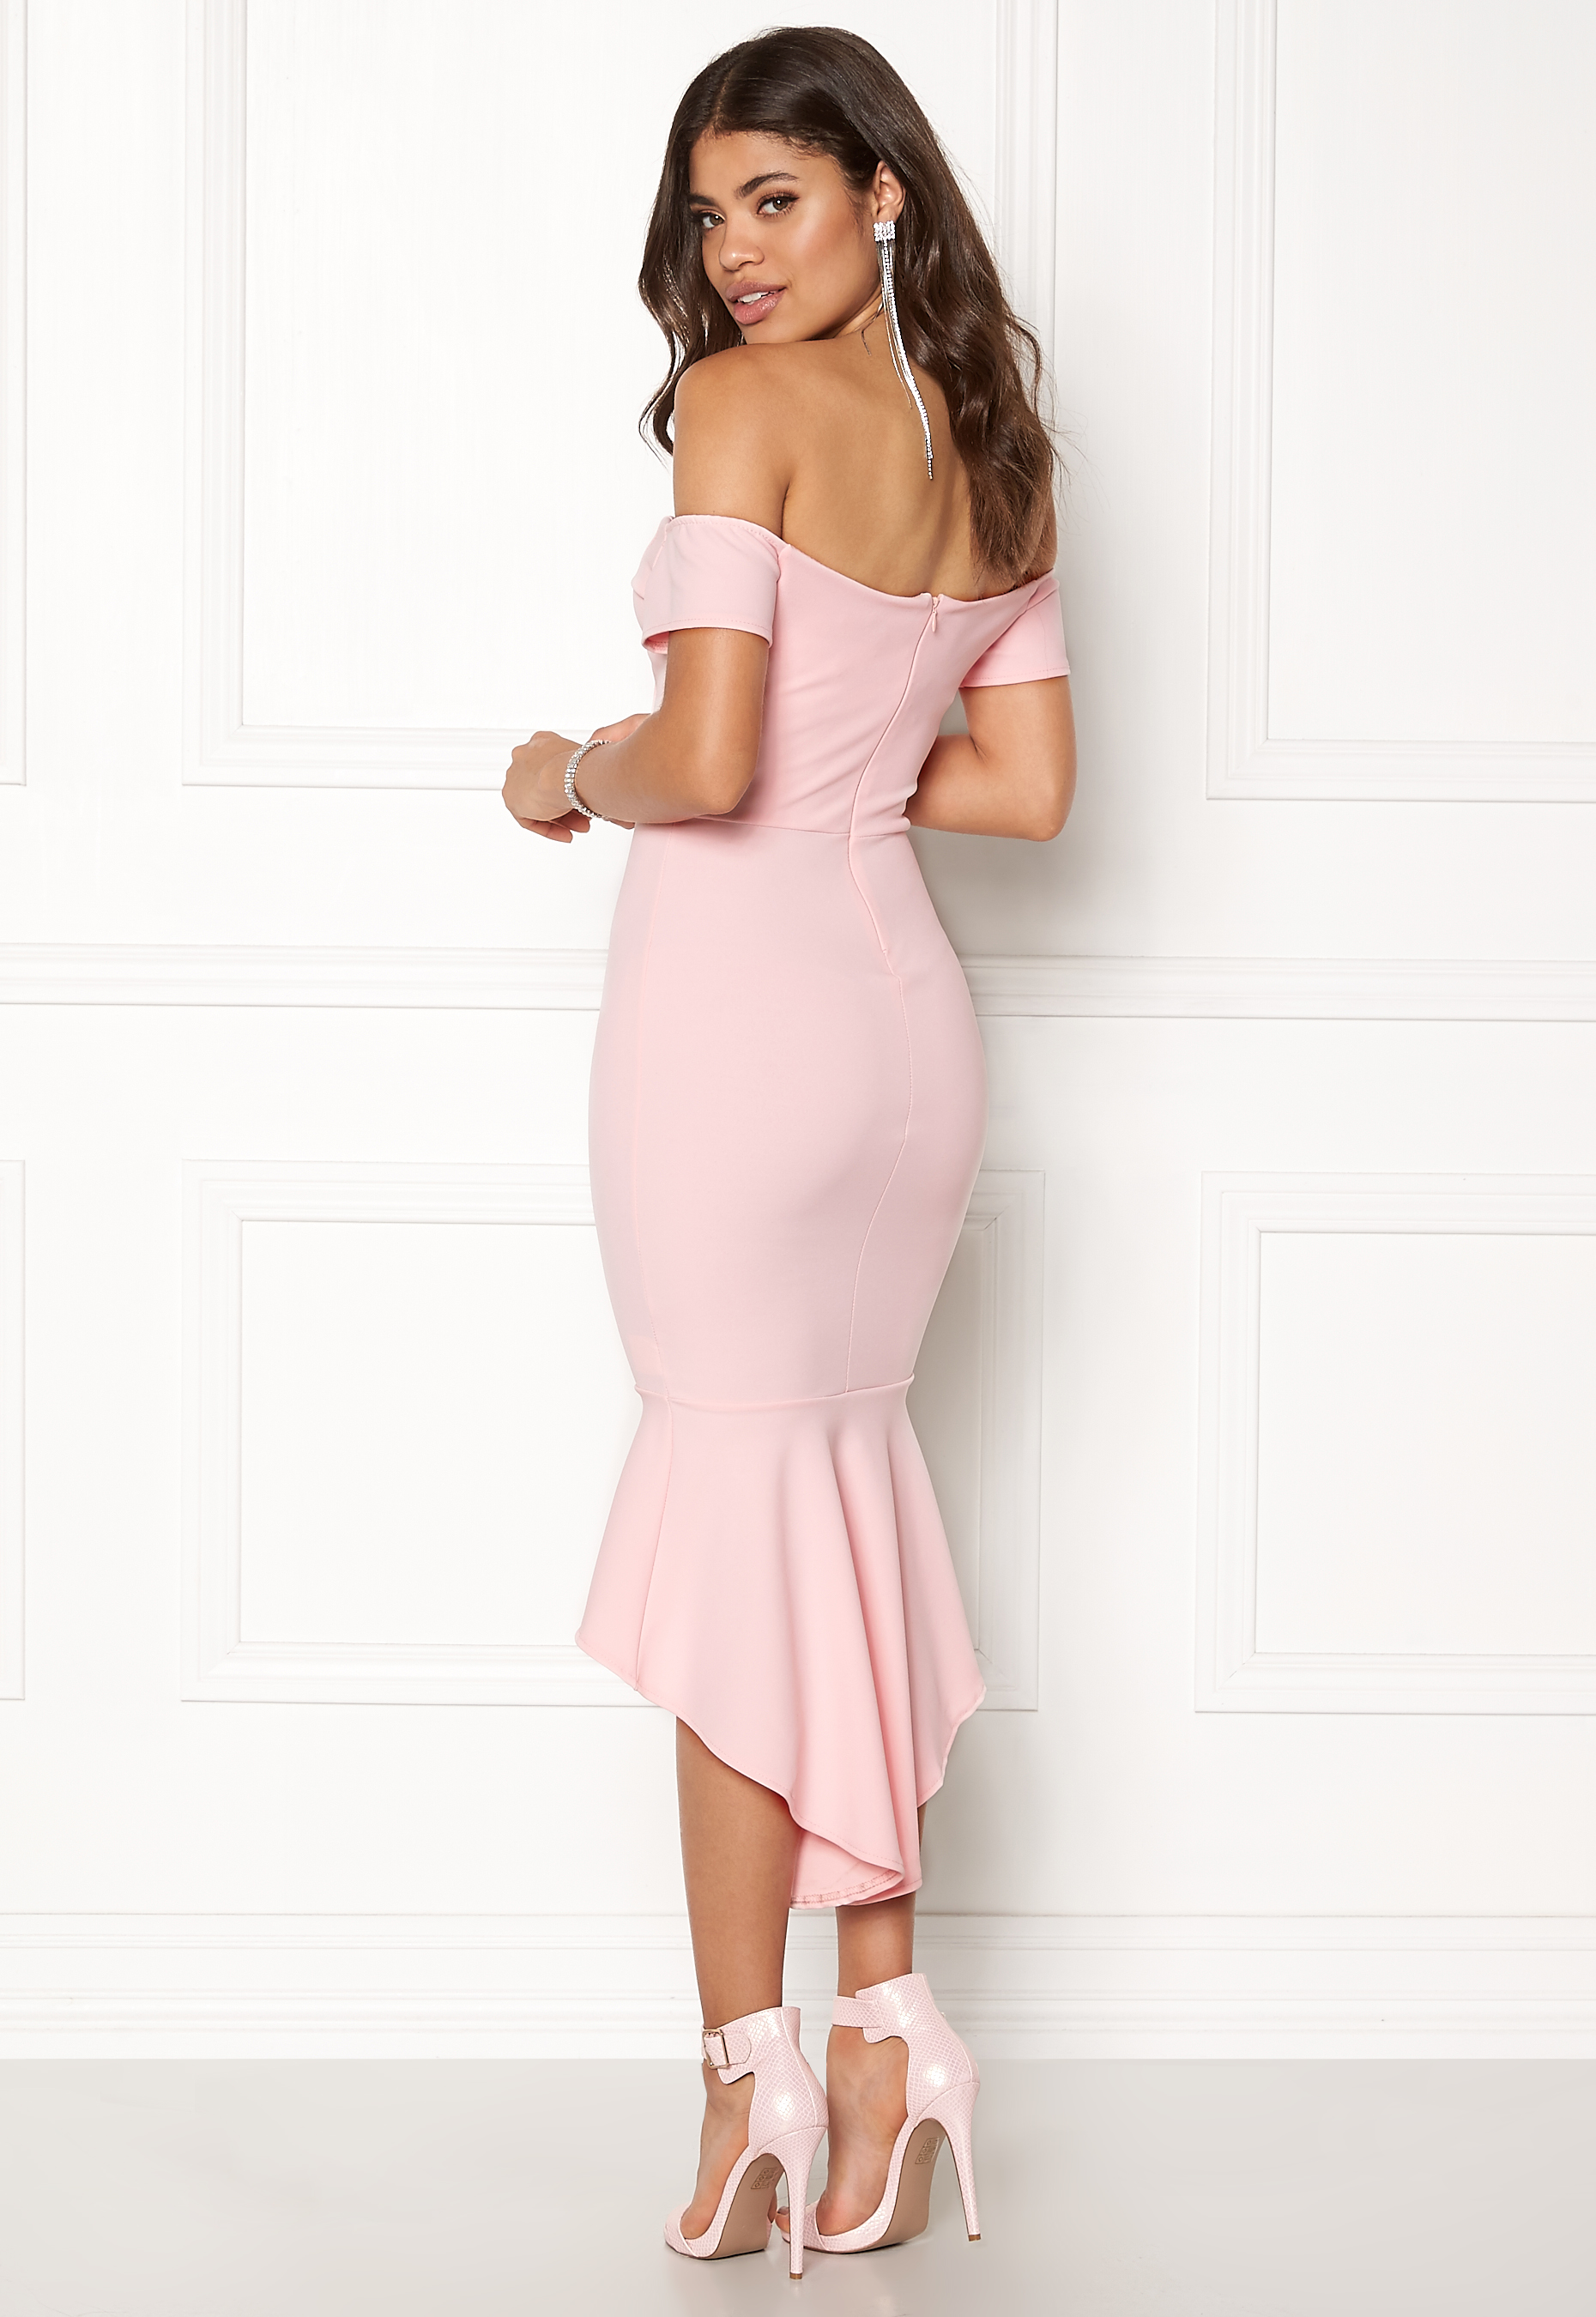 7551d6b6b John Zack Off Shoulder High Dress Pink - Bubbleroom